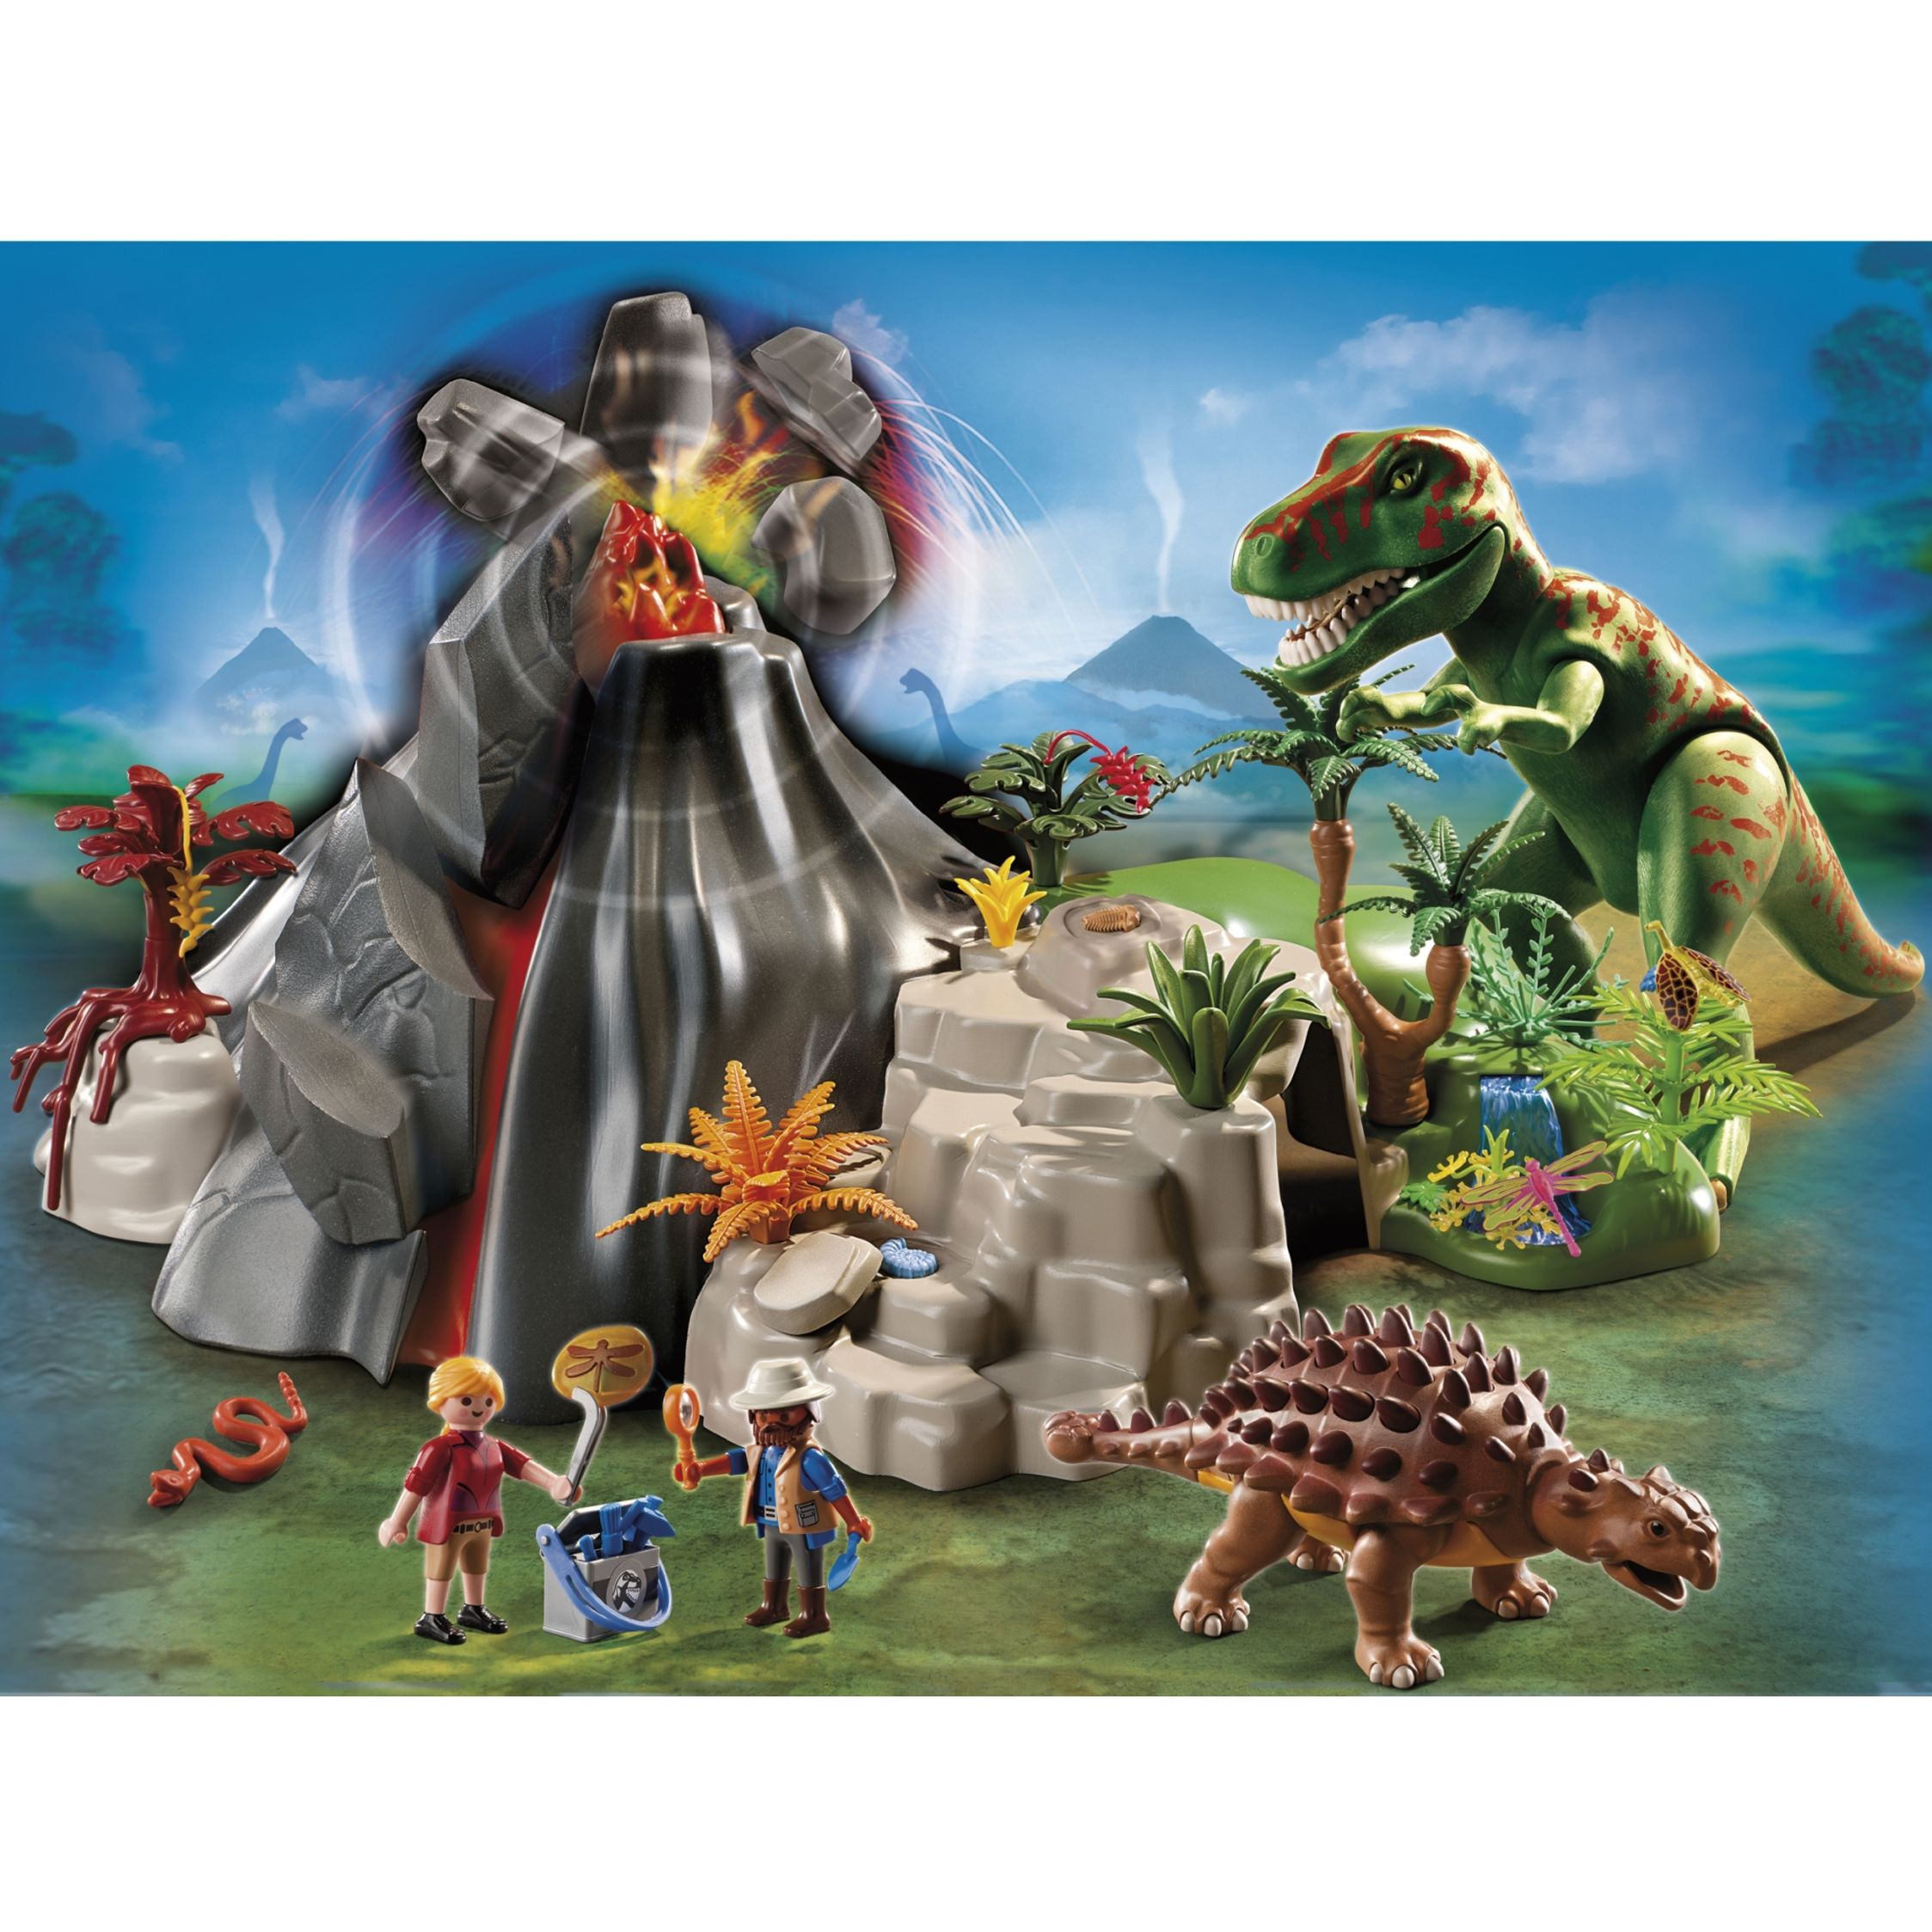 Click here for Playmobil Volcano with Tyrannosaurus